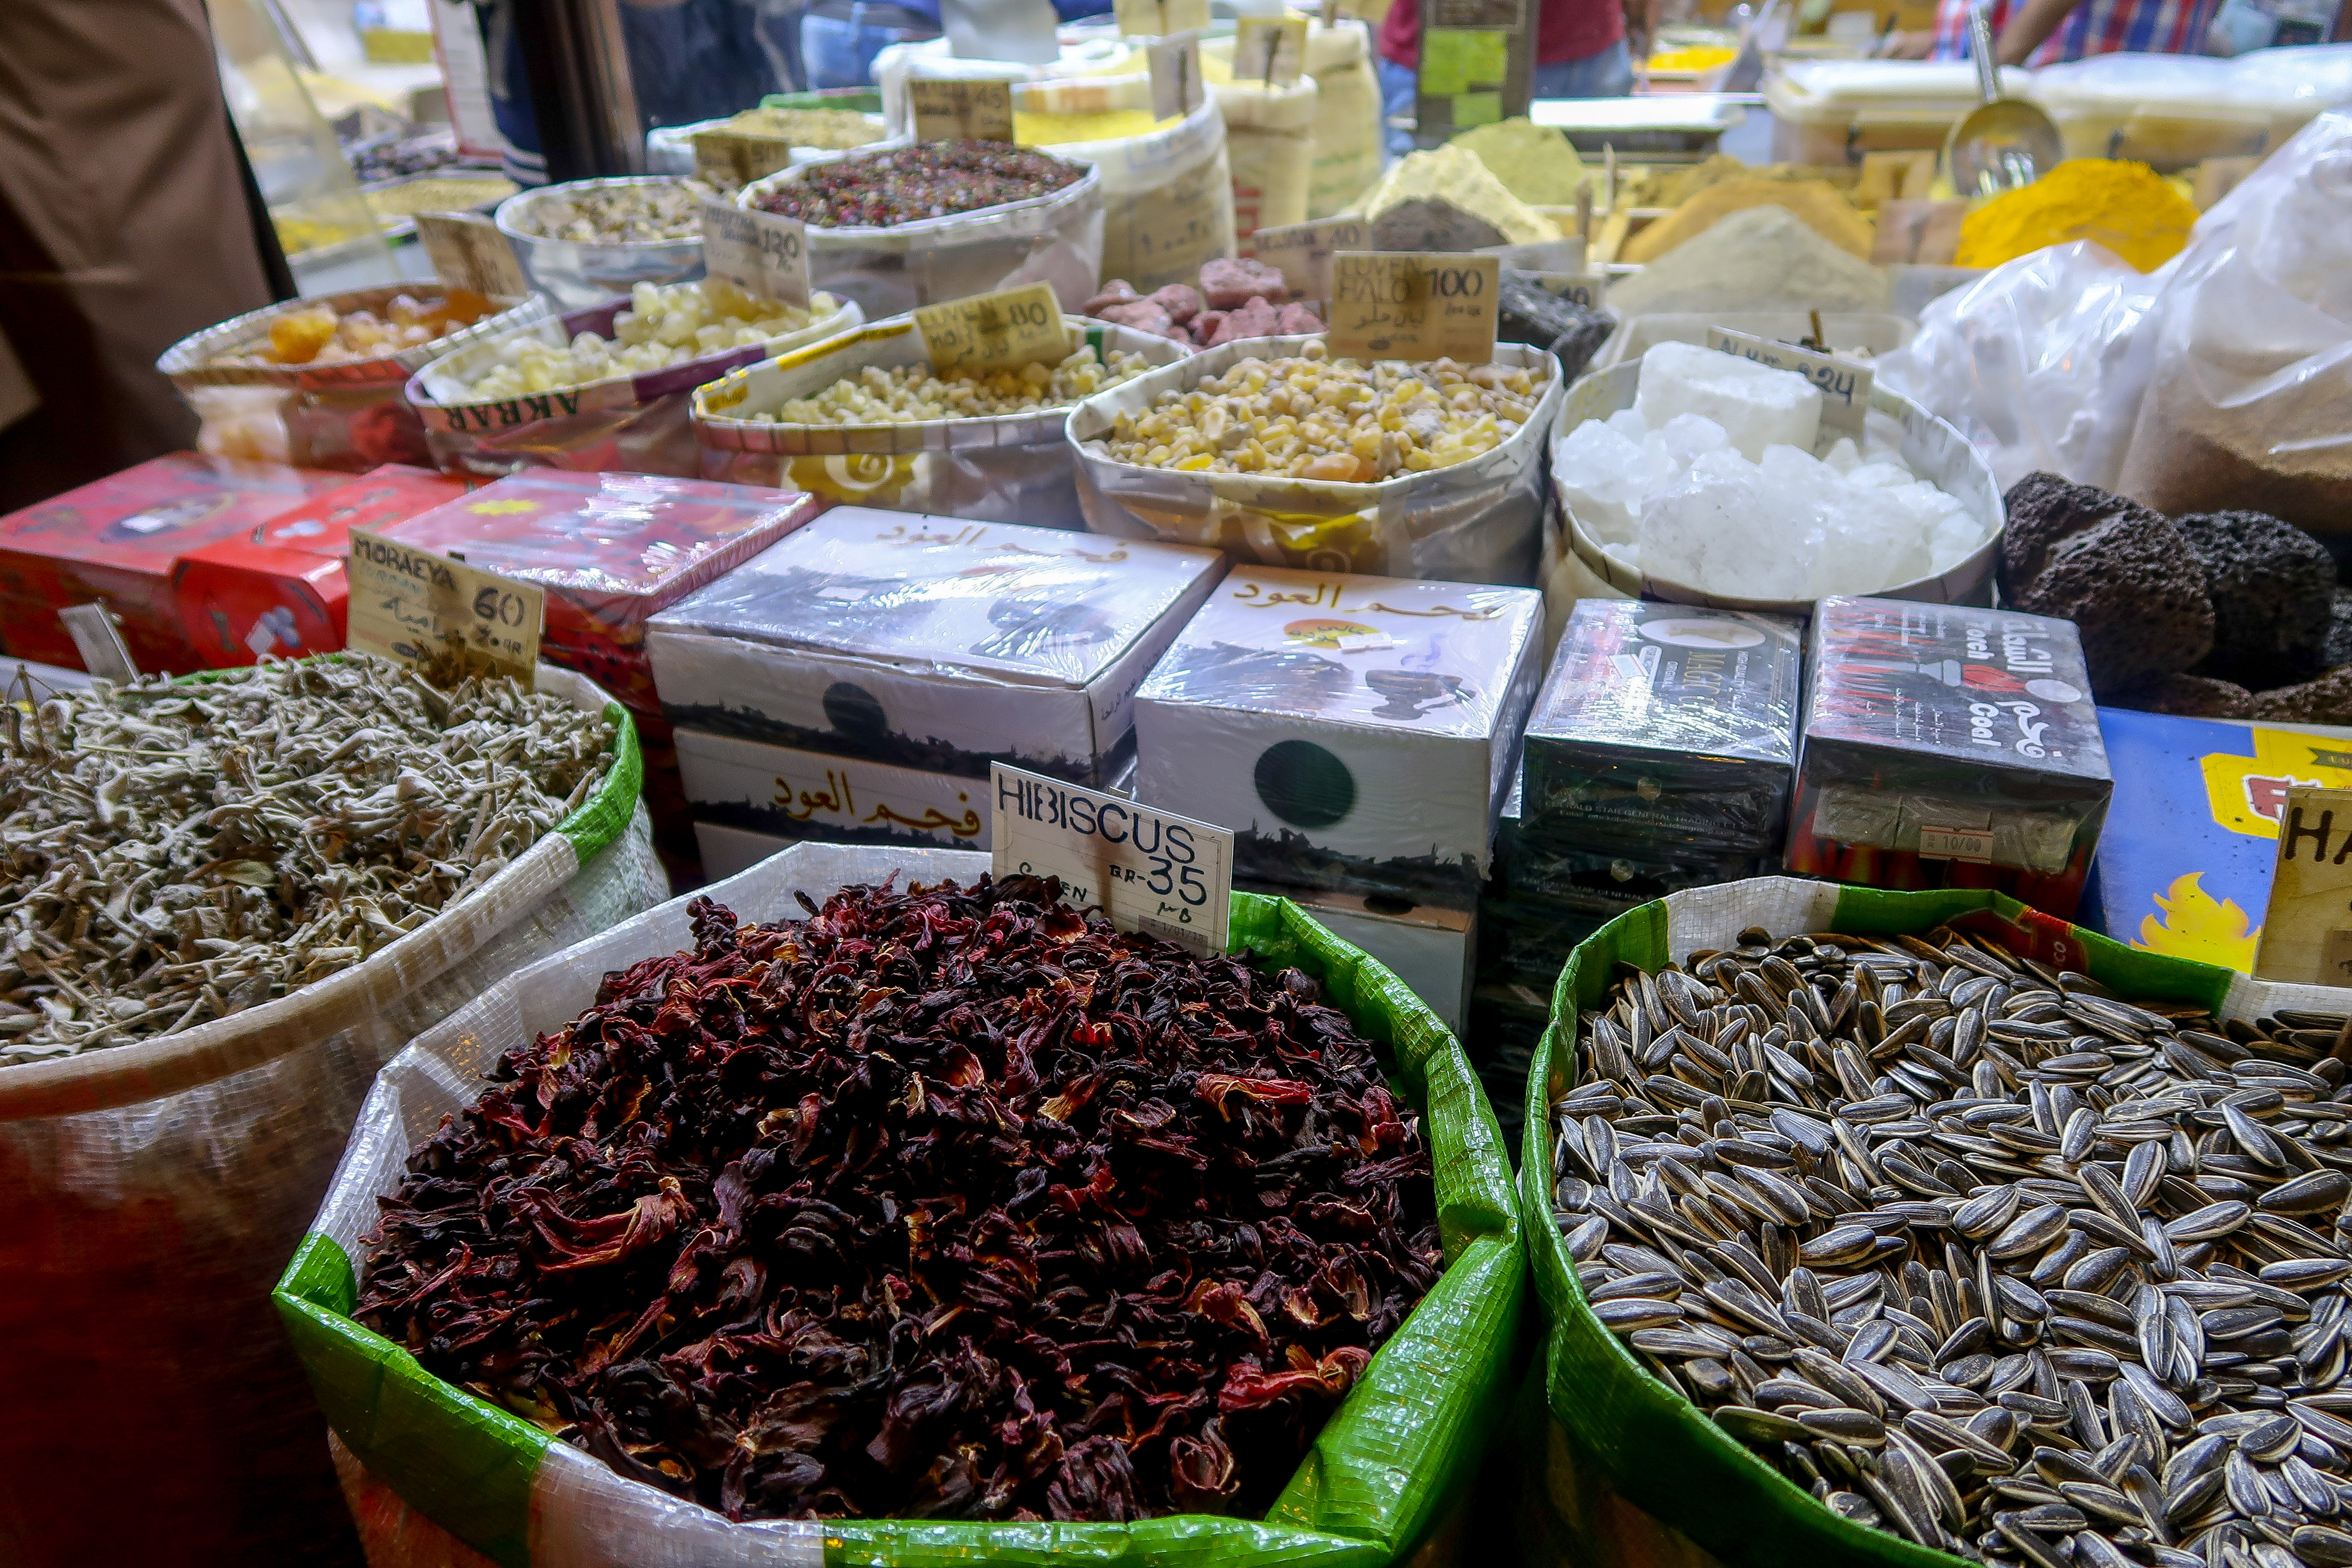 Souq Waquif, spices for cooking | Visit Qatar | Doha, the capital of Qatar is located in the Middle East and the World Cup 2022 location. Find out how I spent 4 days on my visit to Qatar | Travel Guide & Tips | Elle Blonde Luxury Lifestyle Destination Blog